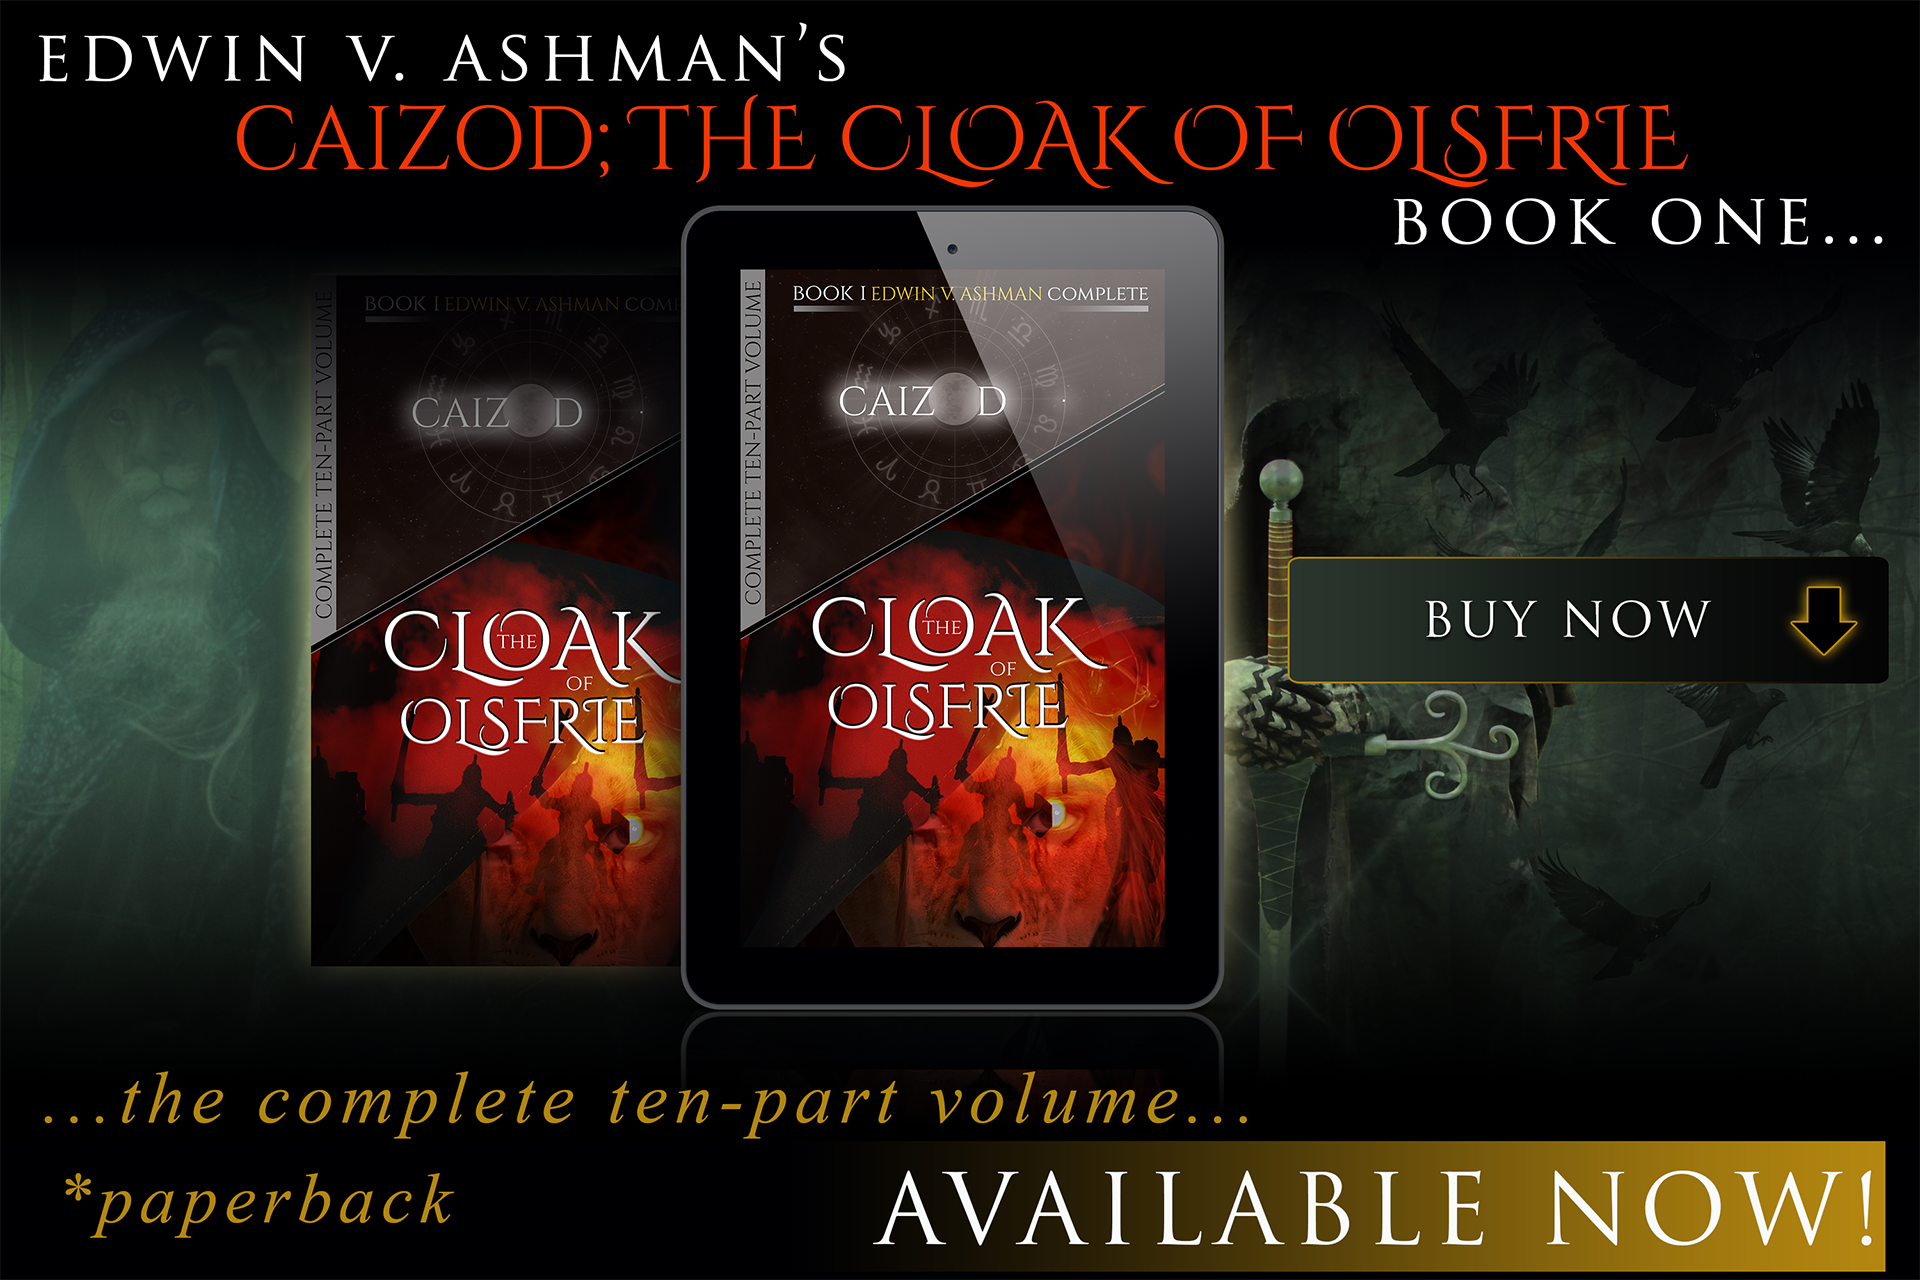 Edwin V. Ashman's Caizod; The Cloak of Olsfrie, Book One... the complete ten-part volume... Available Now!